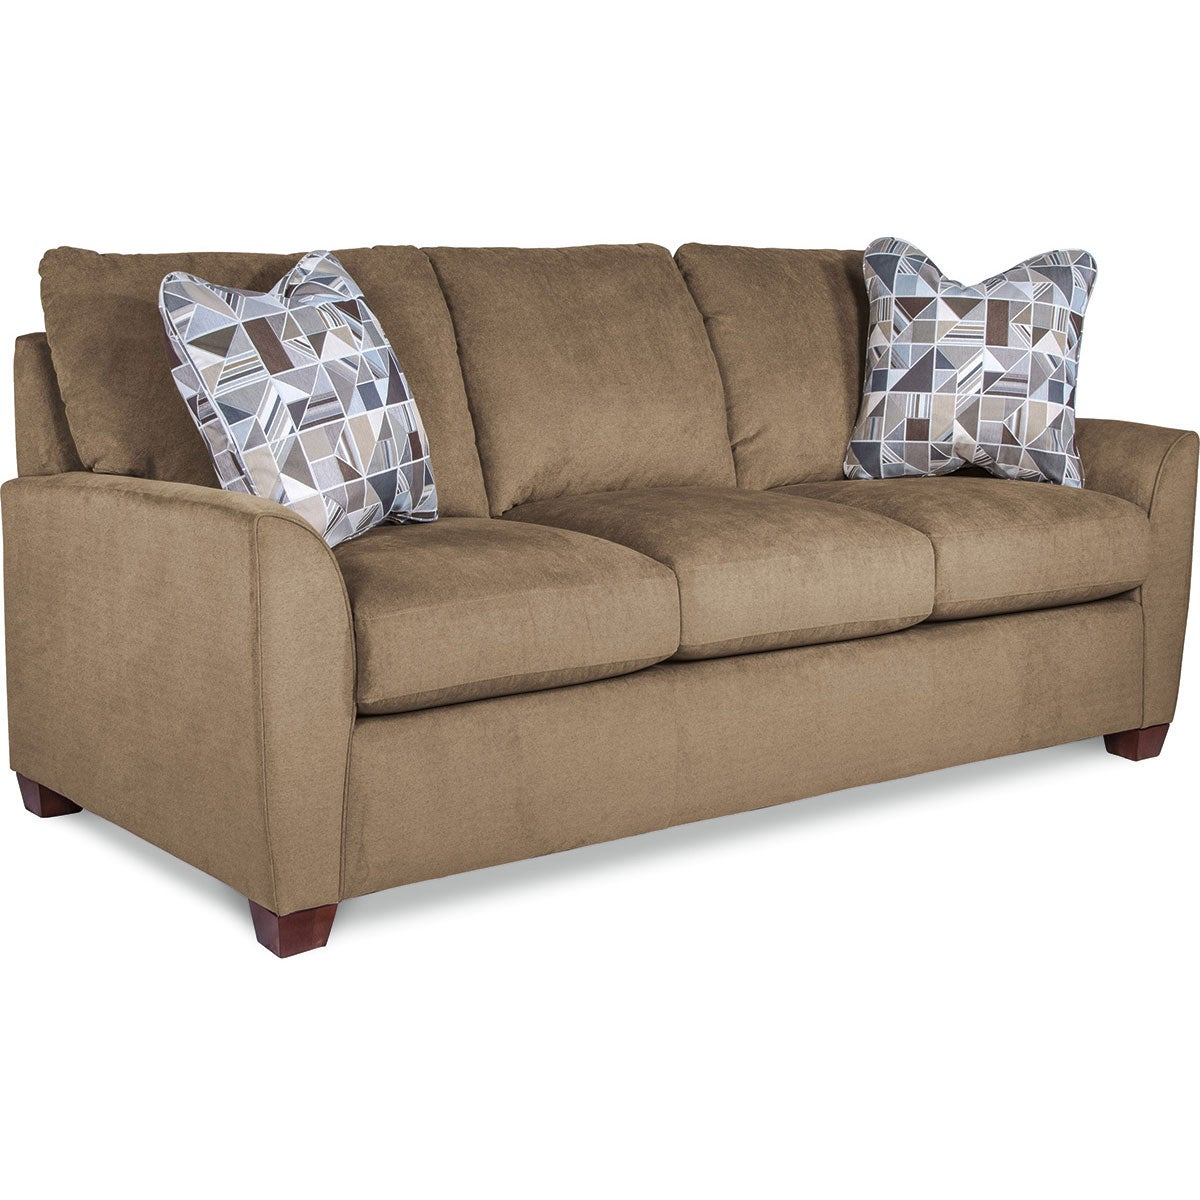 Amy premier sofa for Furniture sofas and couches